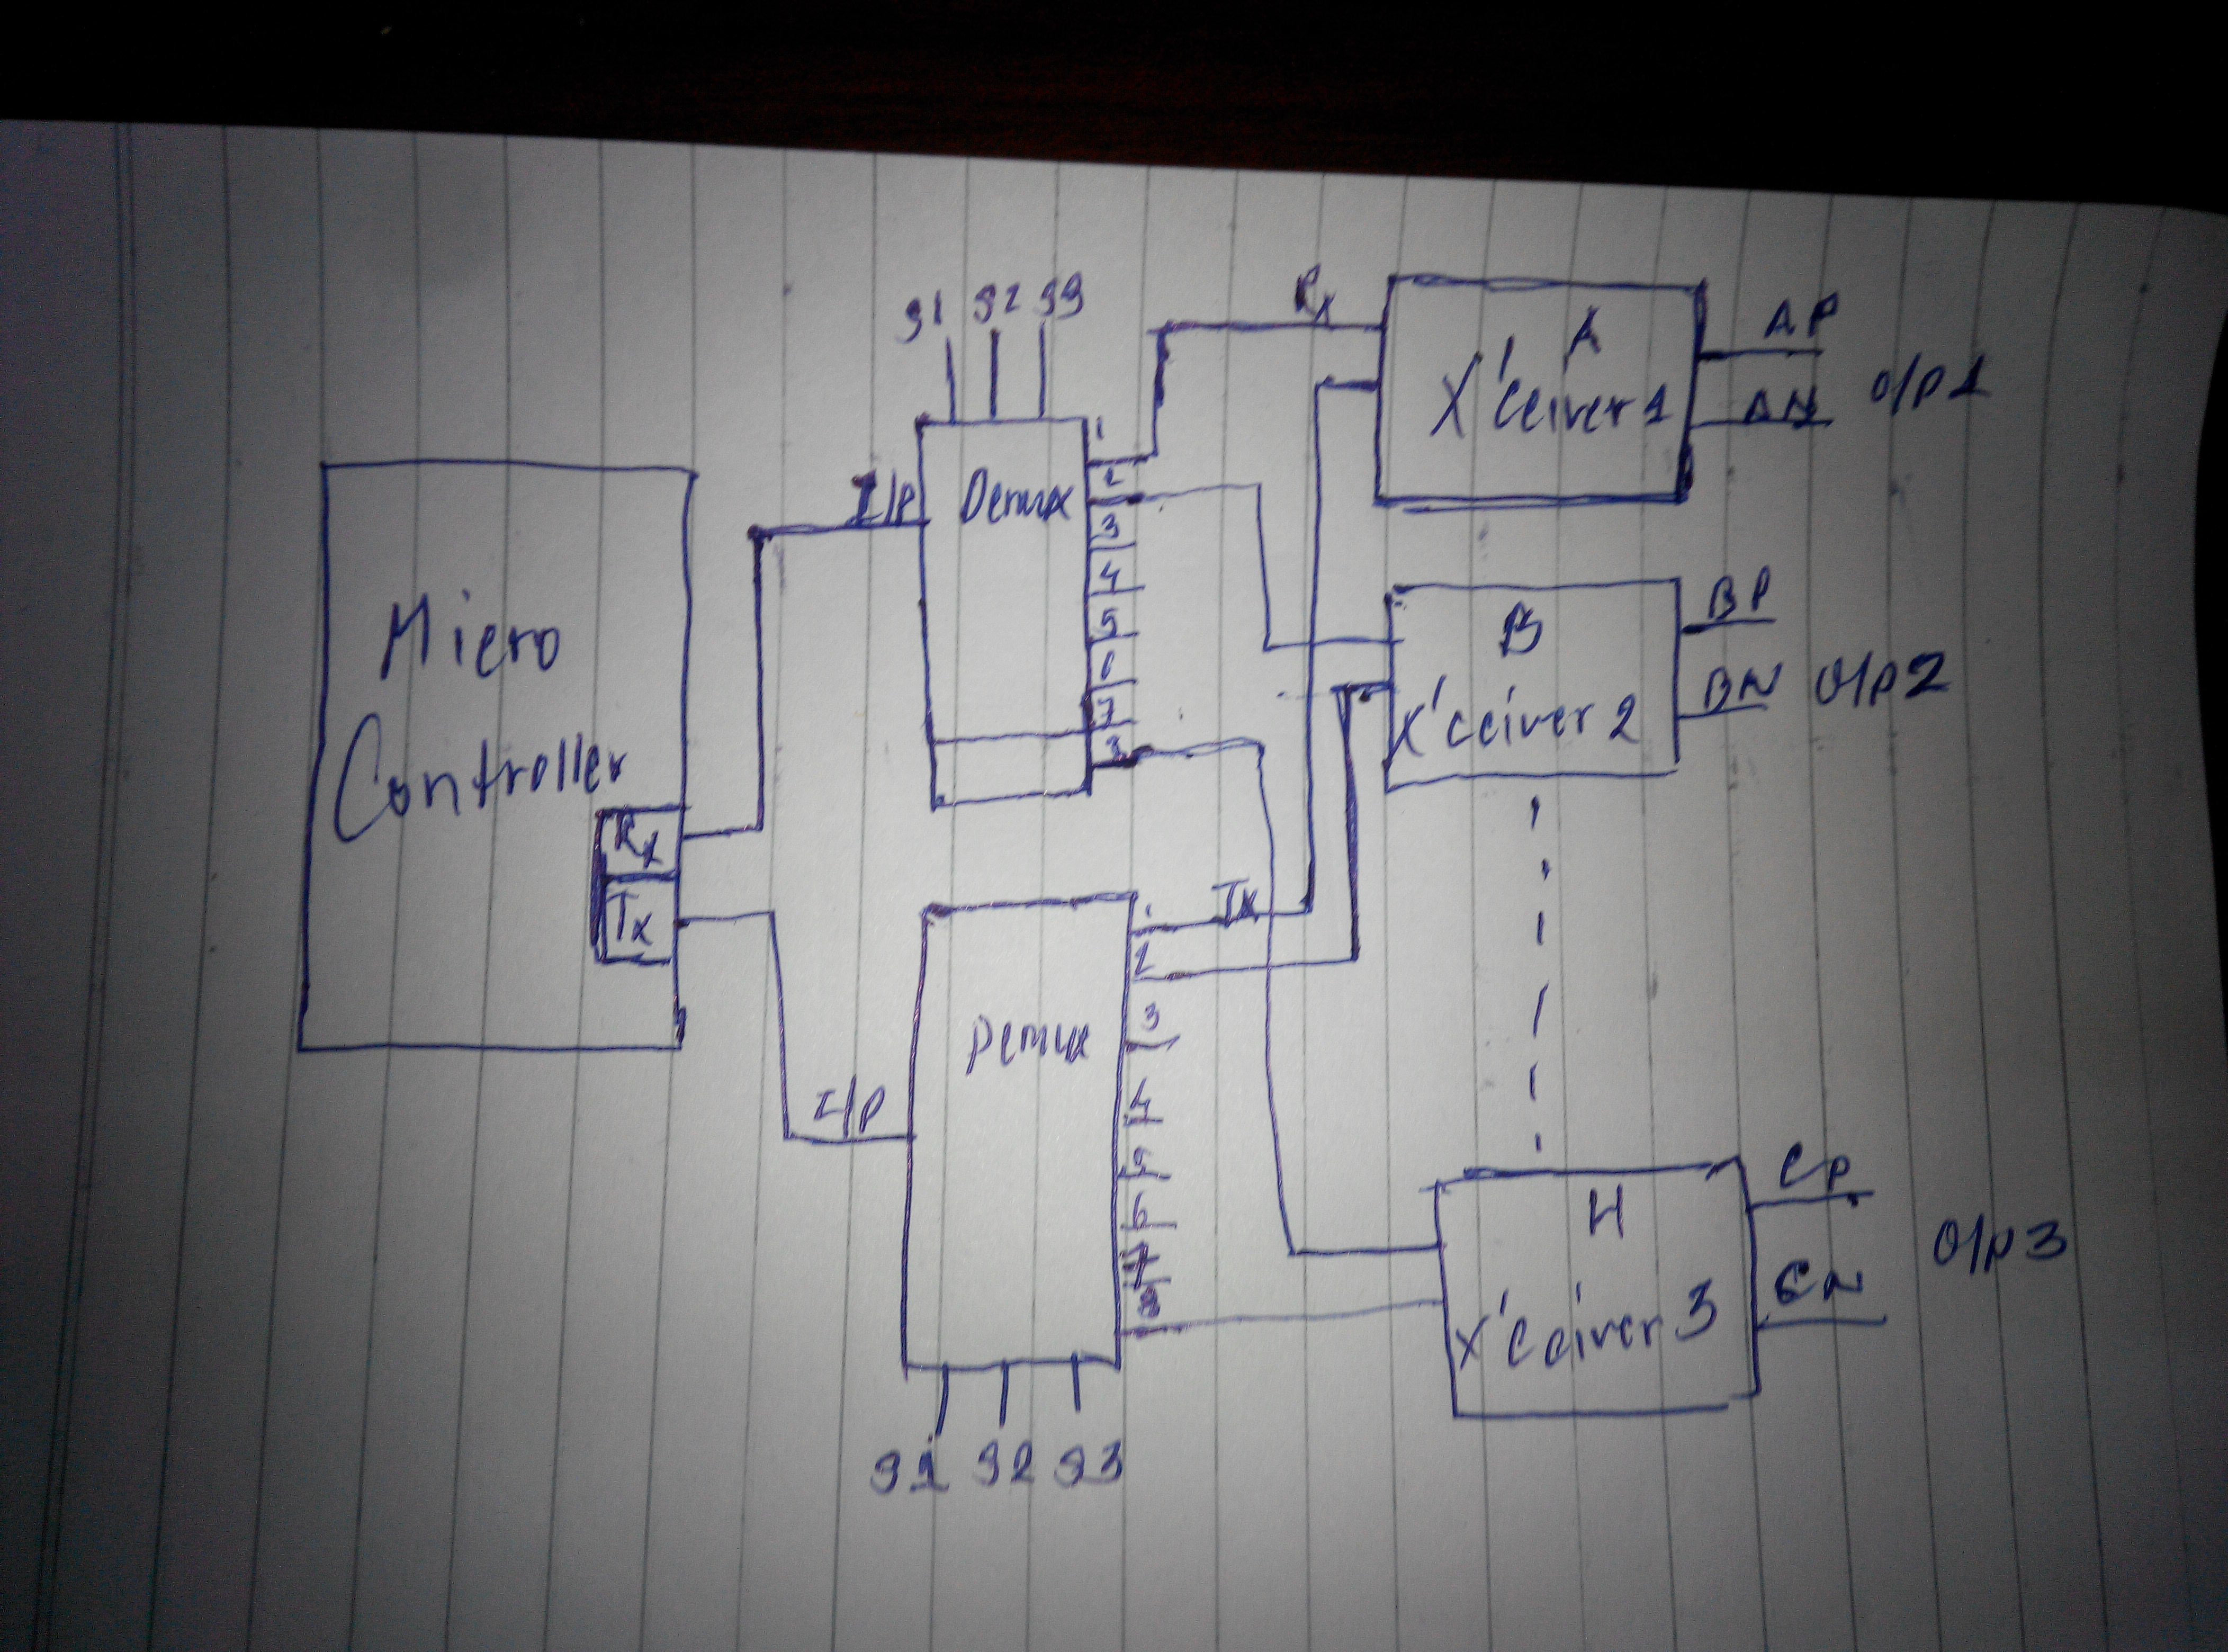 rs485 wiring fire pump diagram [resolved] is star topology of modbus-rs485 possible? - industrial interface forum ...